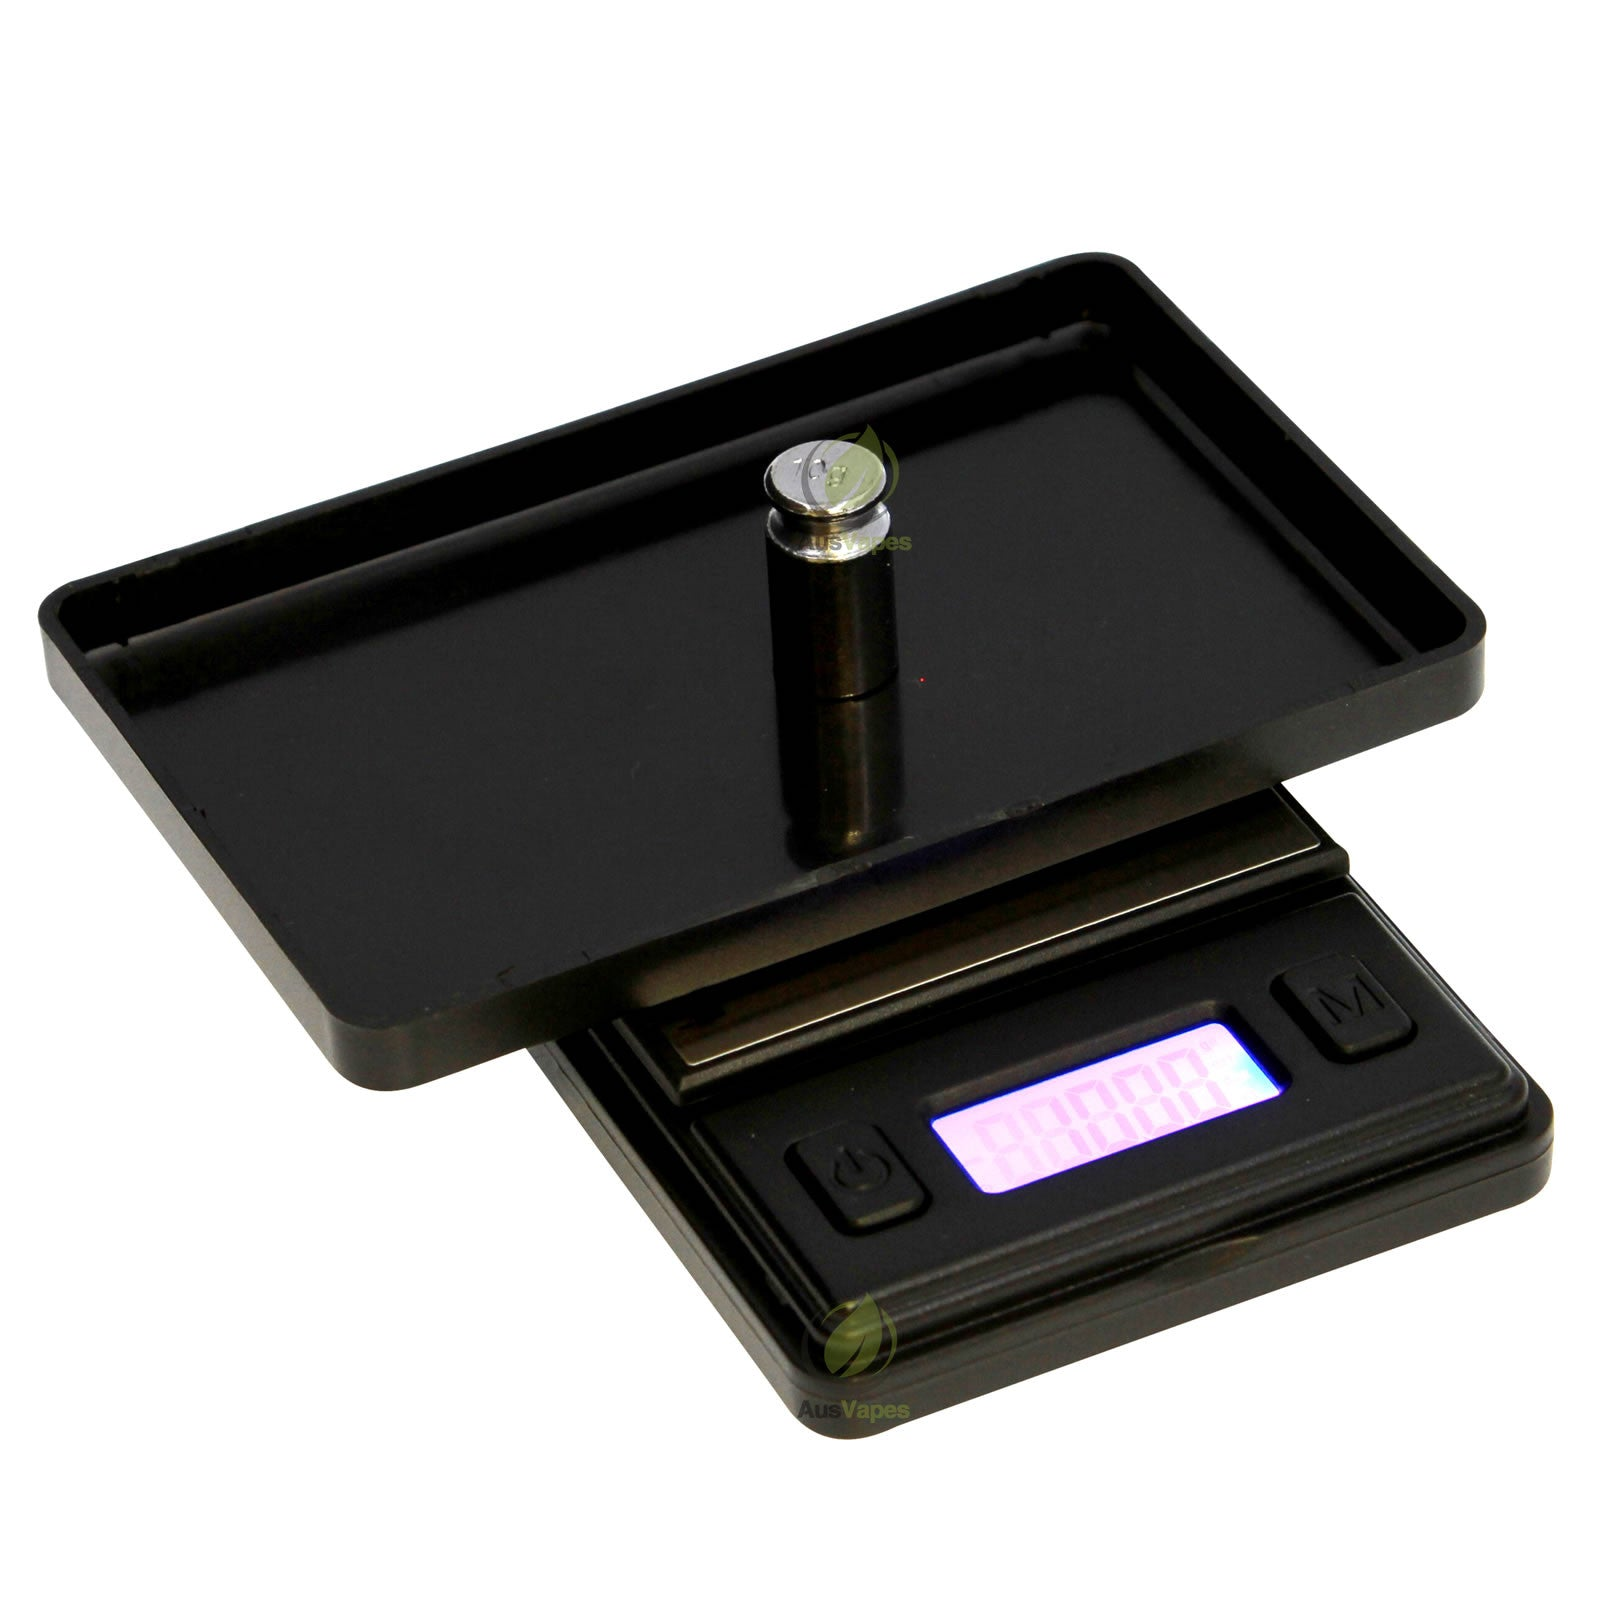 DISCONTINUED Infyniti Eazy-E Virus Digital Pocket Scale 50g x 0.01g